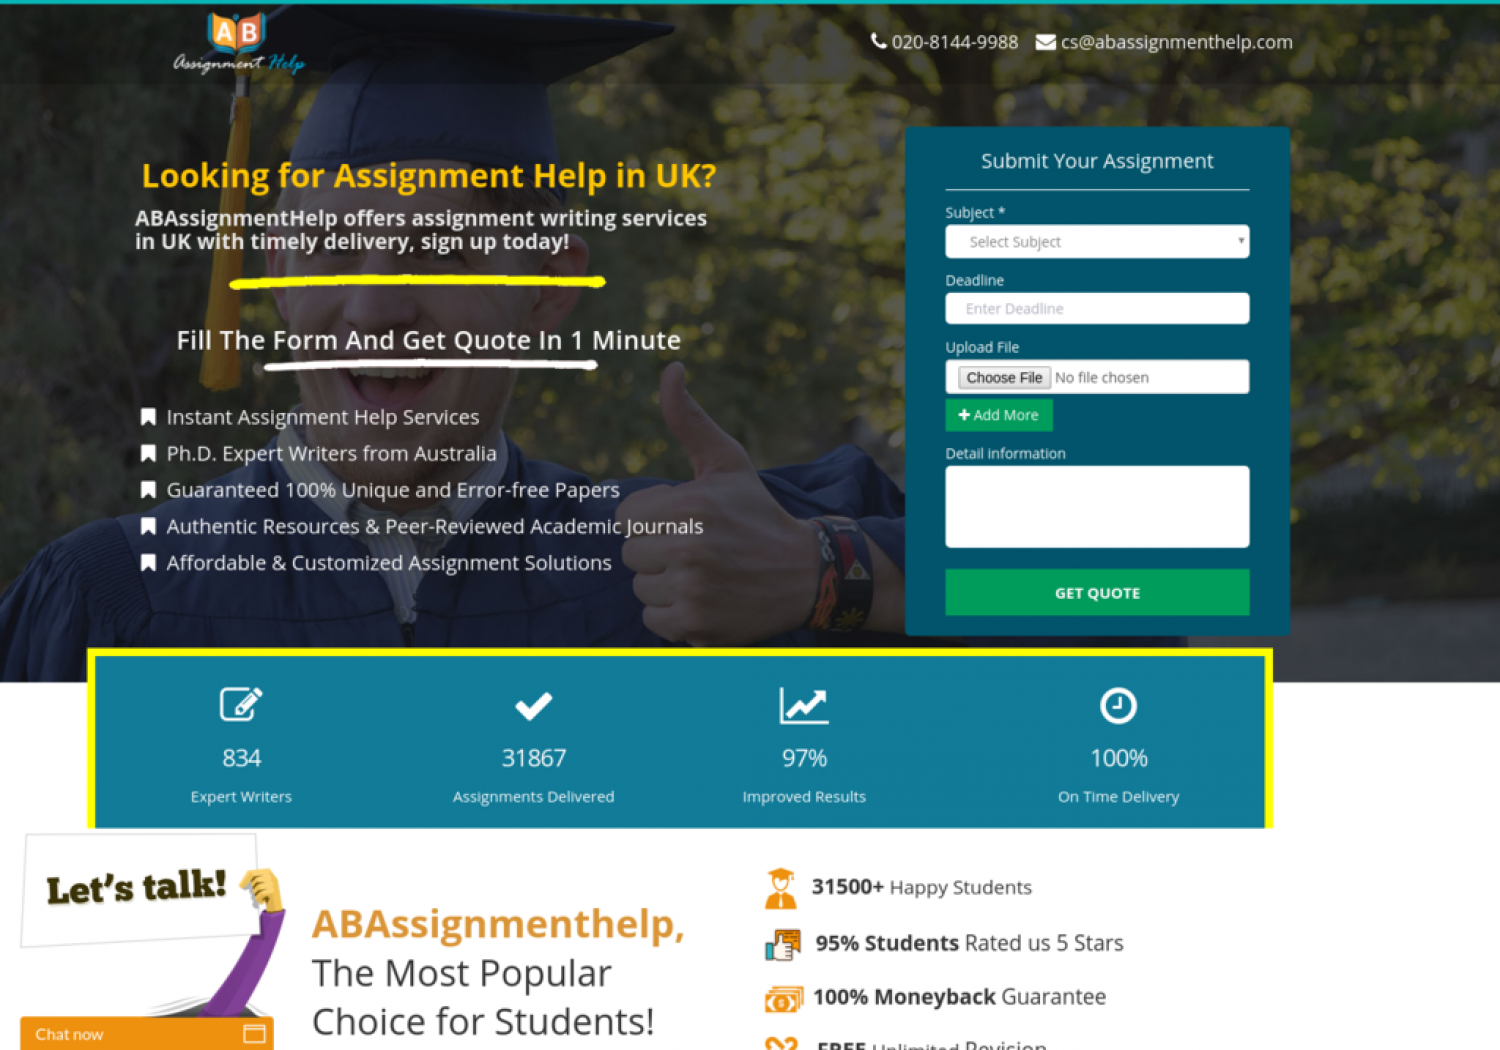 OVERRIDING FEATURES OF ASSIGNMENT HELP SERVICES Infographic